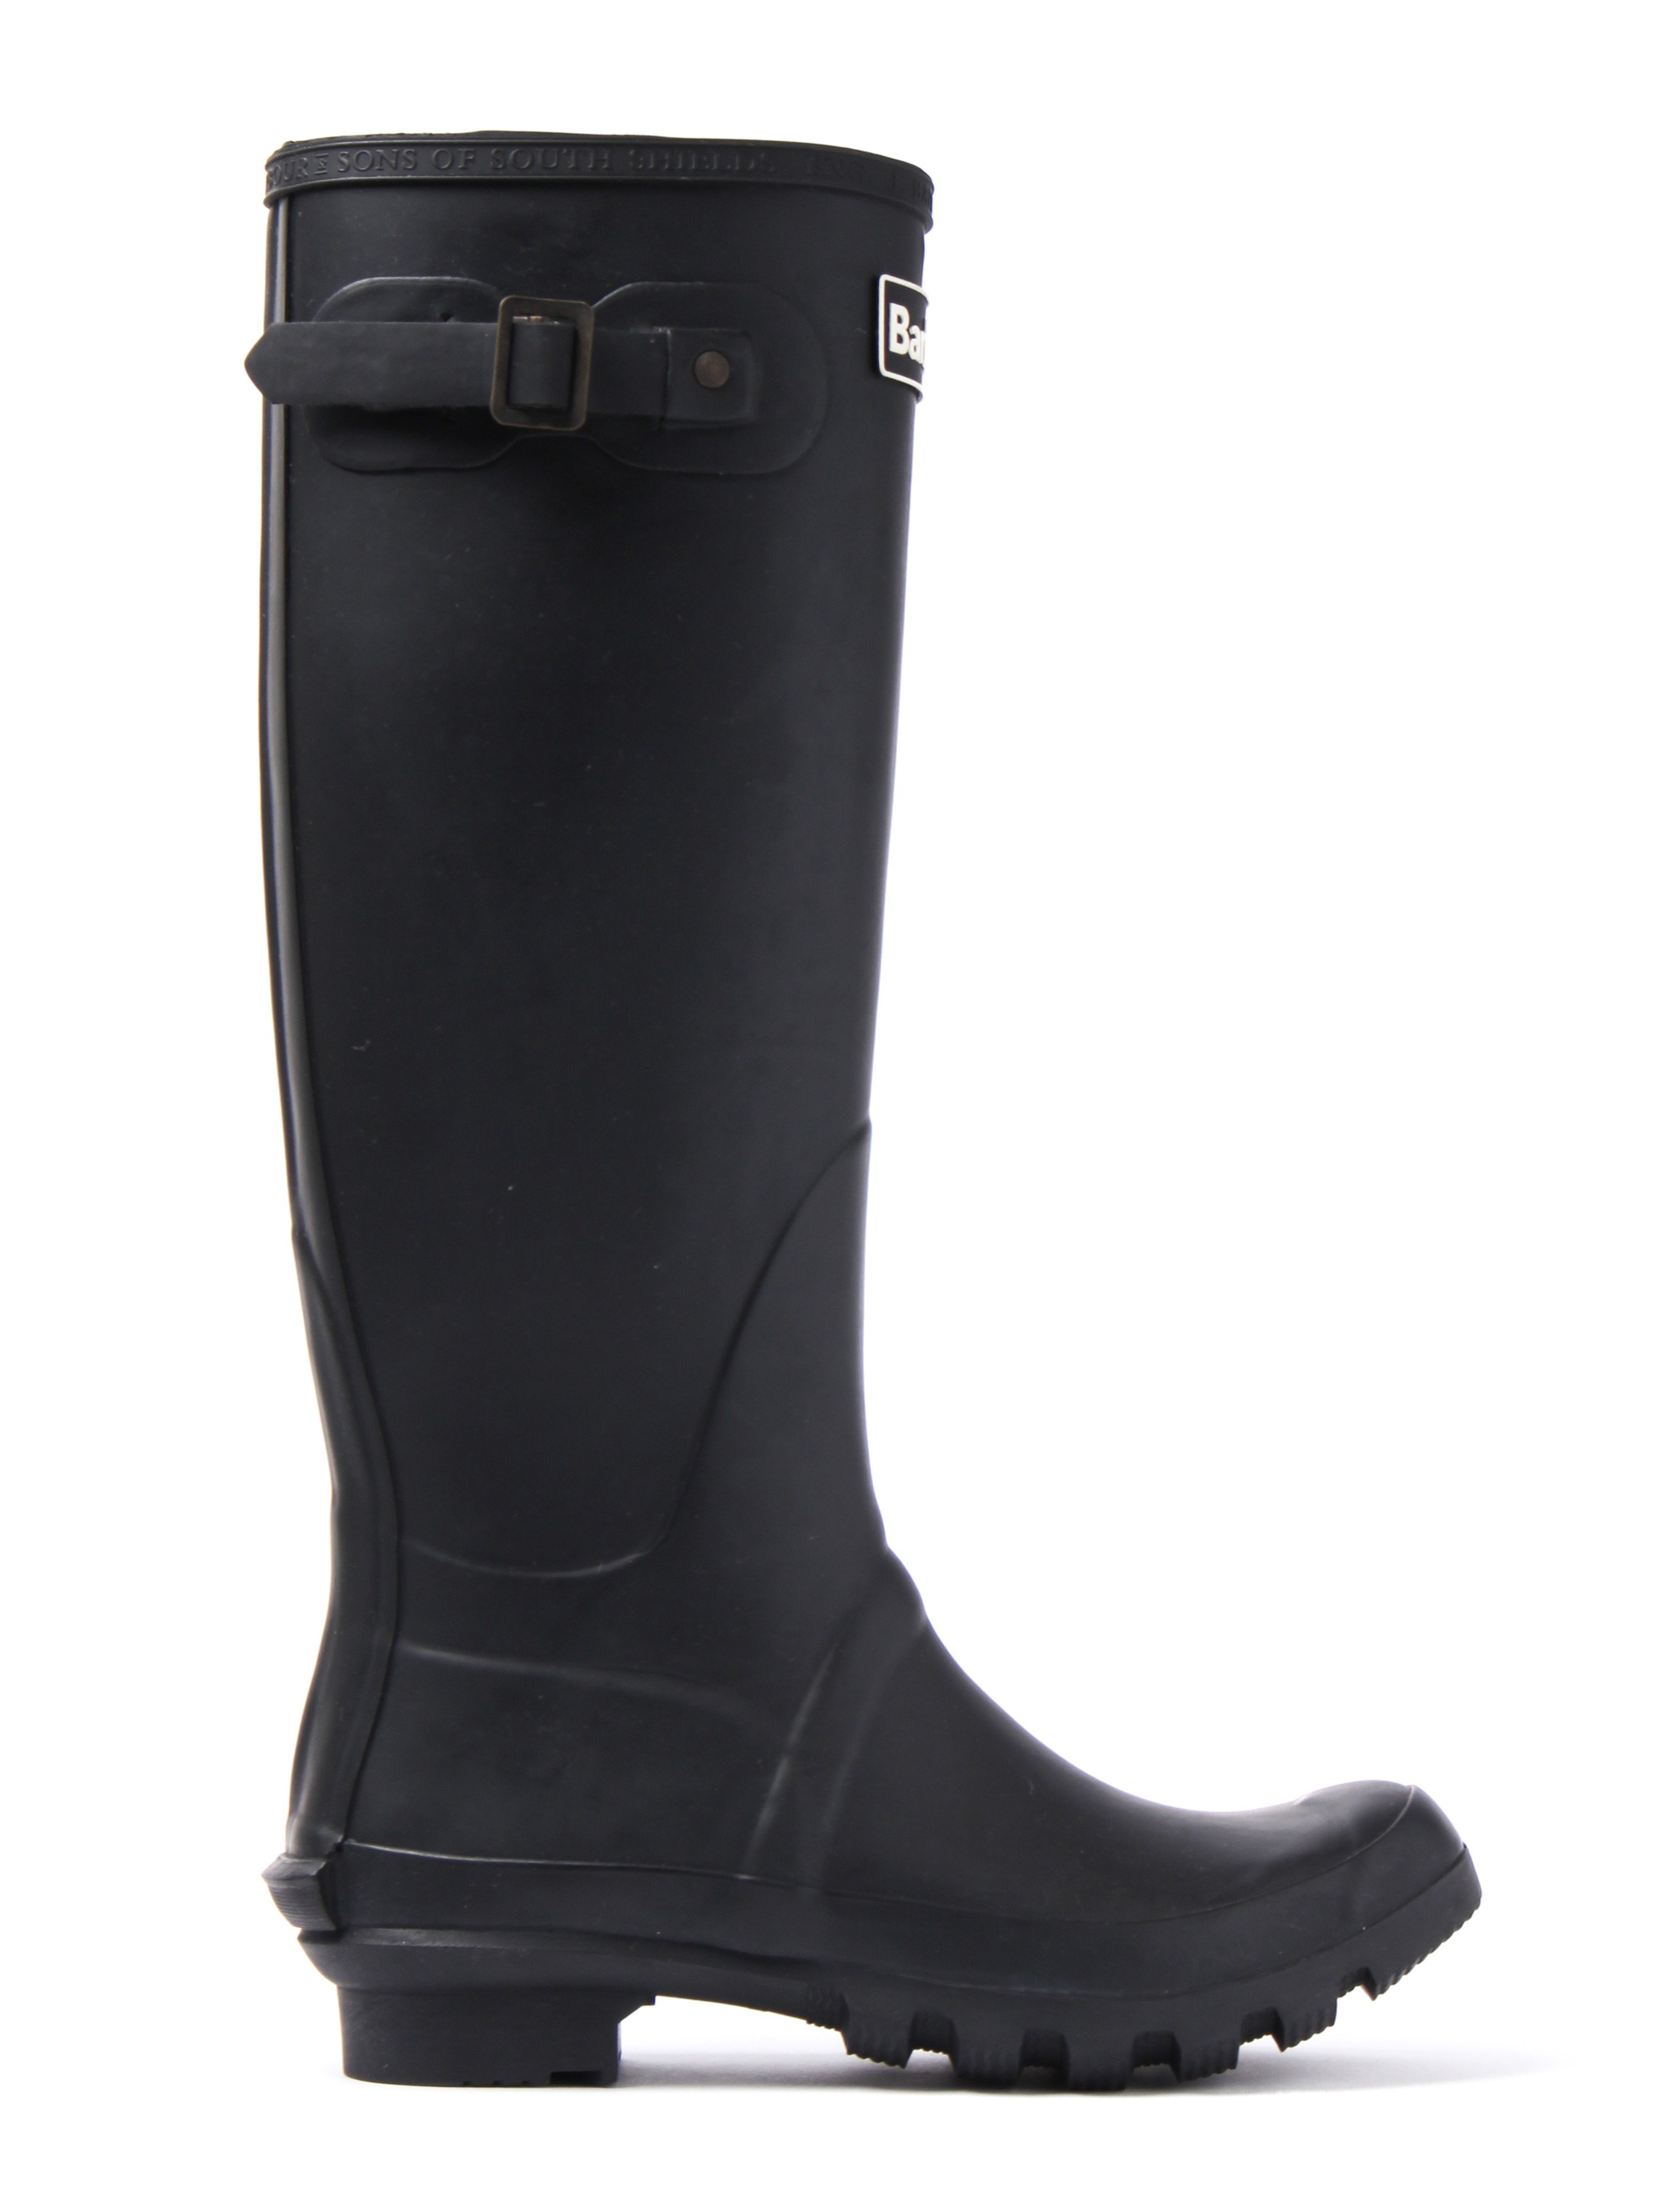 Barbour Women's Bede Rubber Wellington Boots - Black